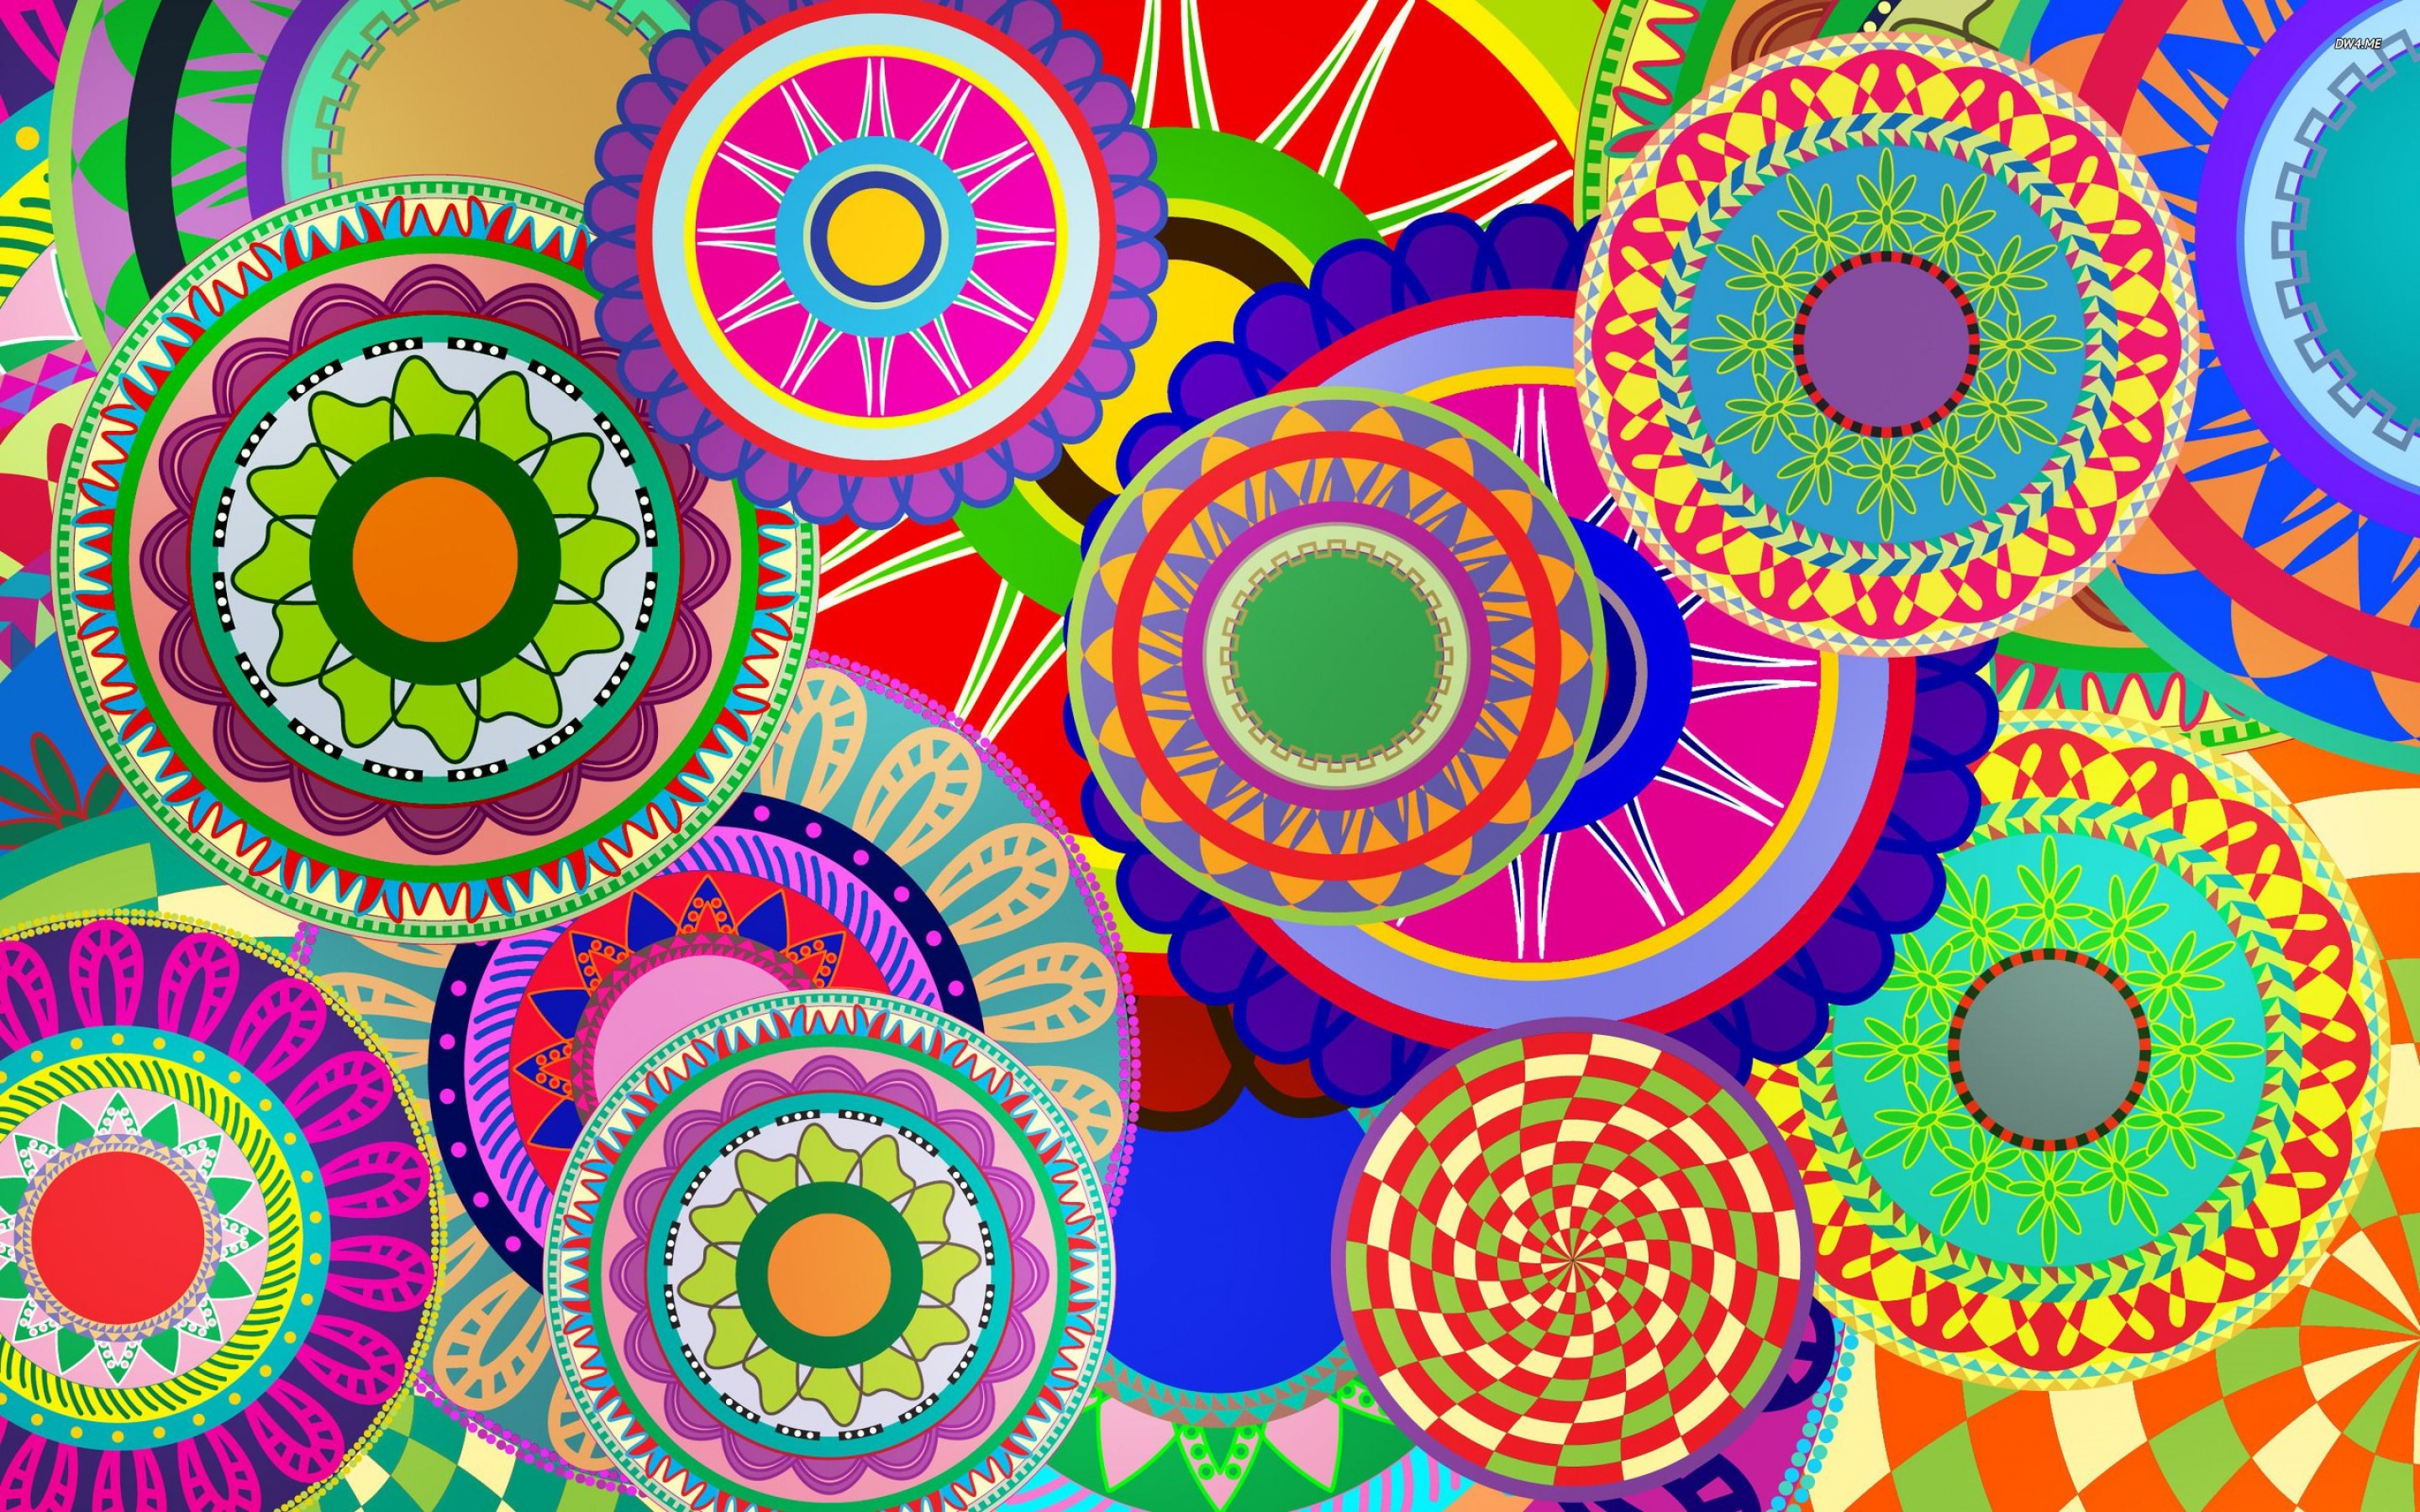 Hd wallpaper colorful - Cool Wallpapers Art With Many Colorful Circles Hd Wallpapers For